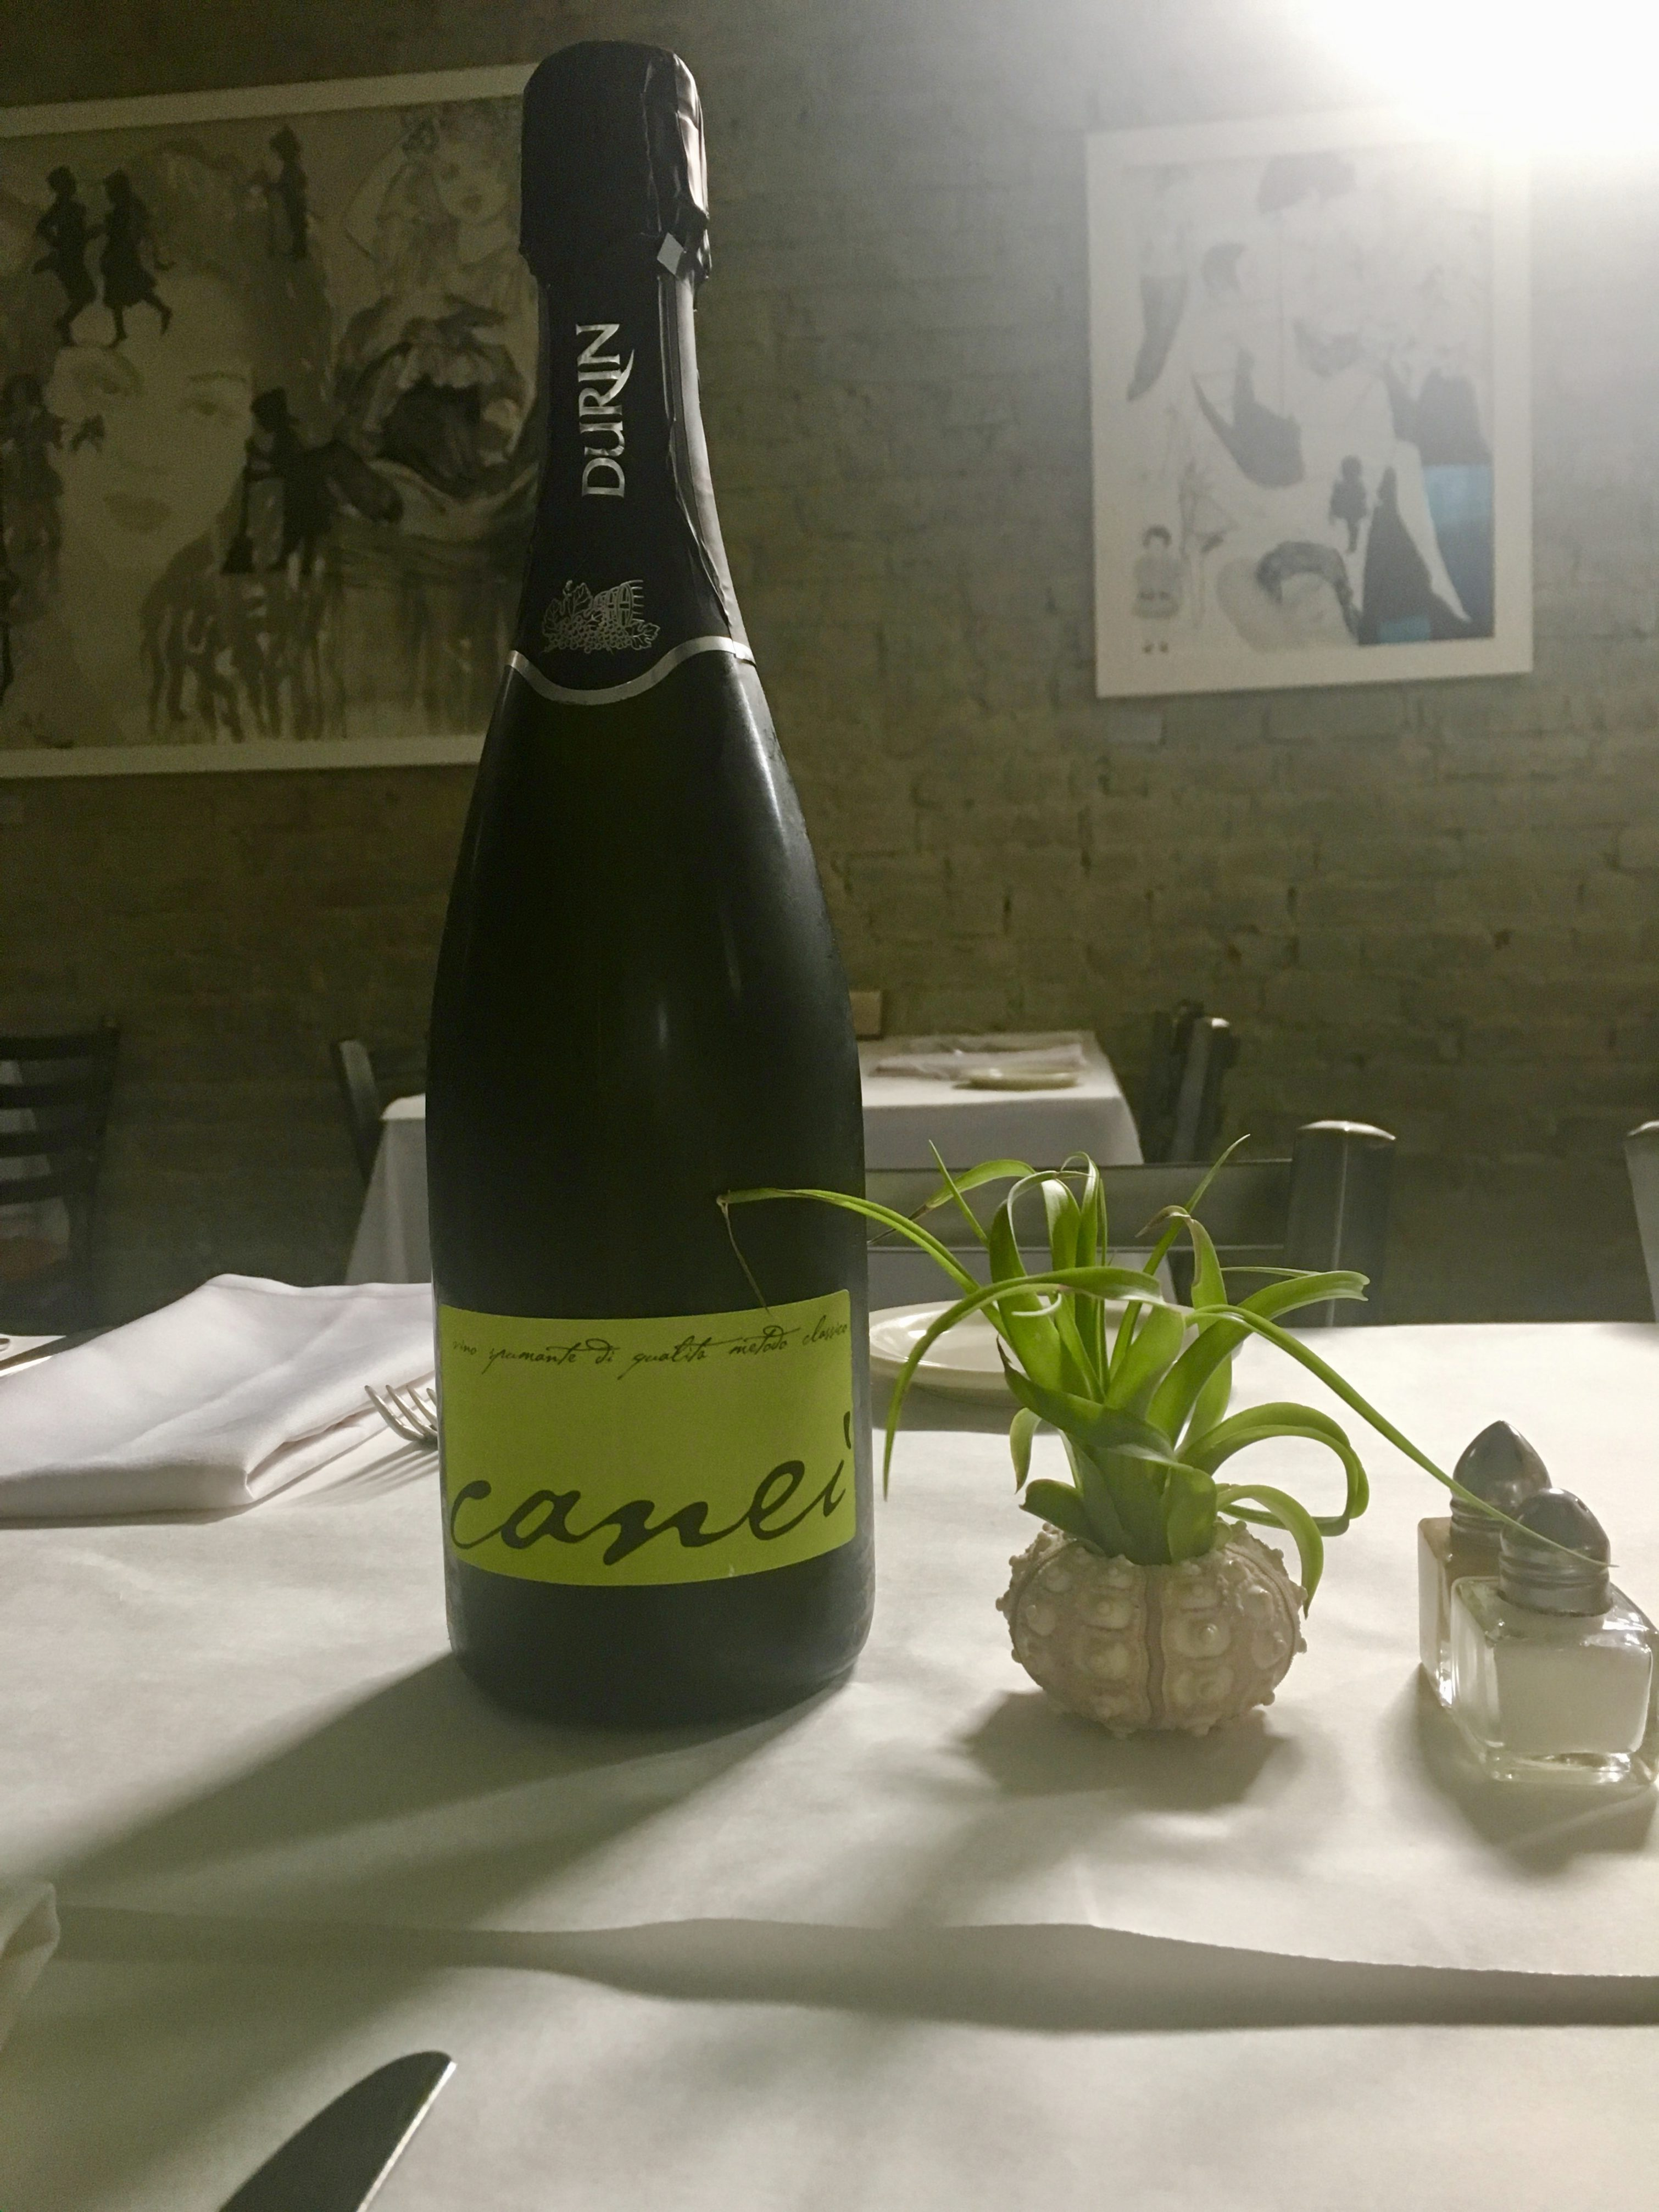 Durin Sparkling Pigato from Liguria